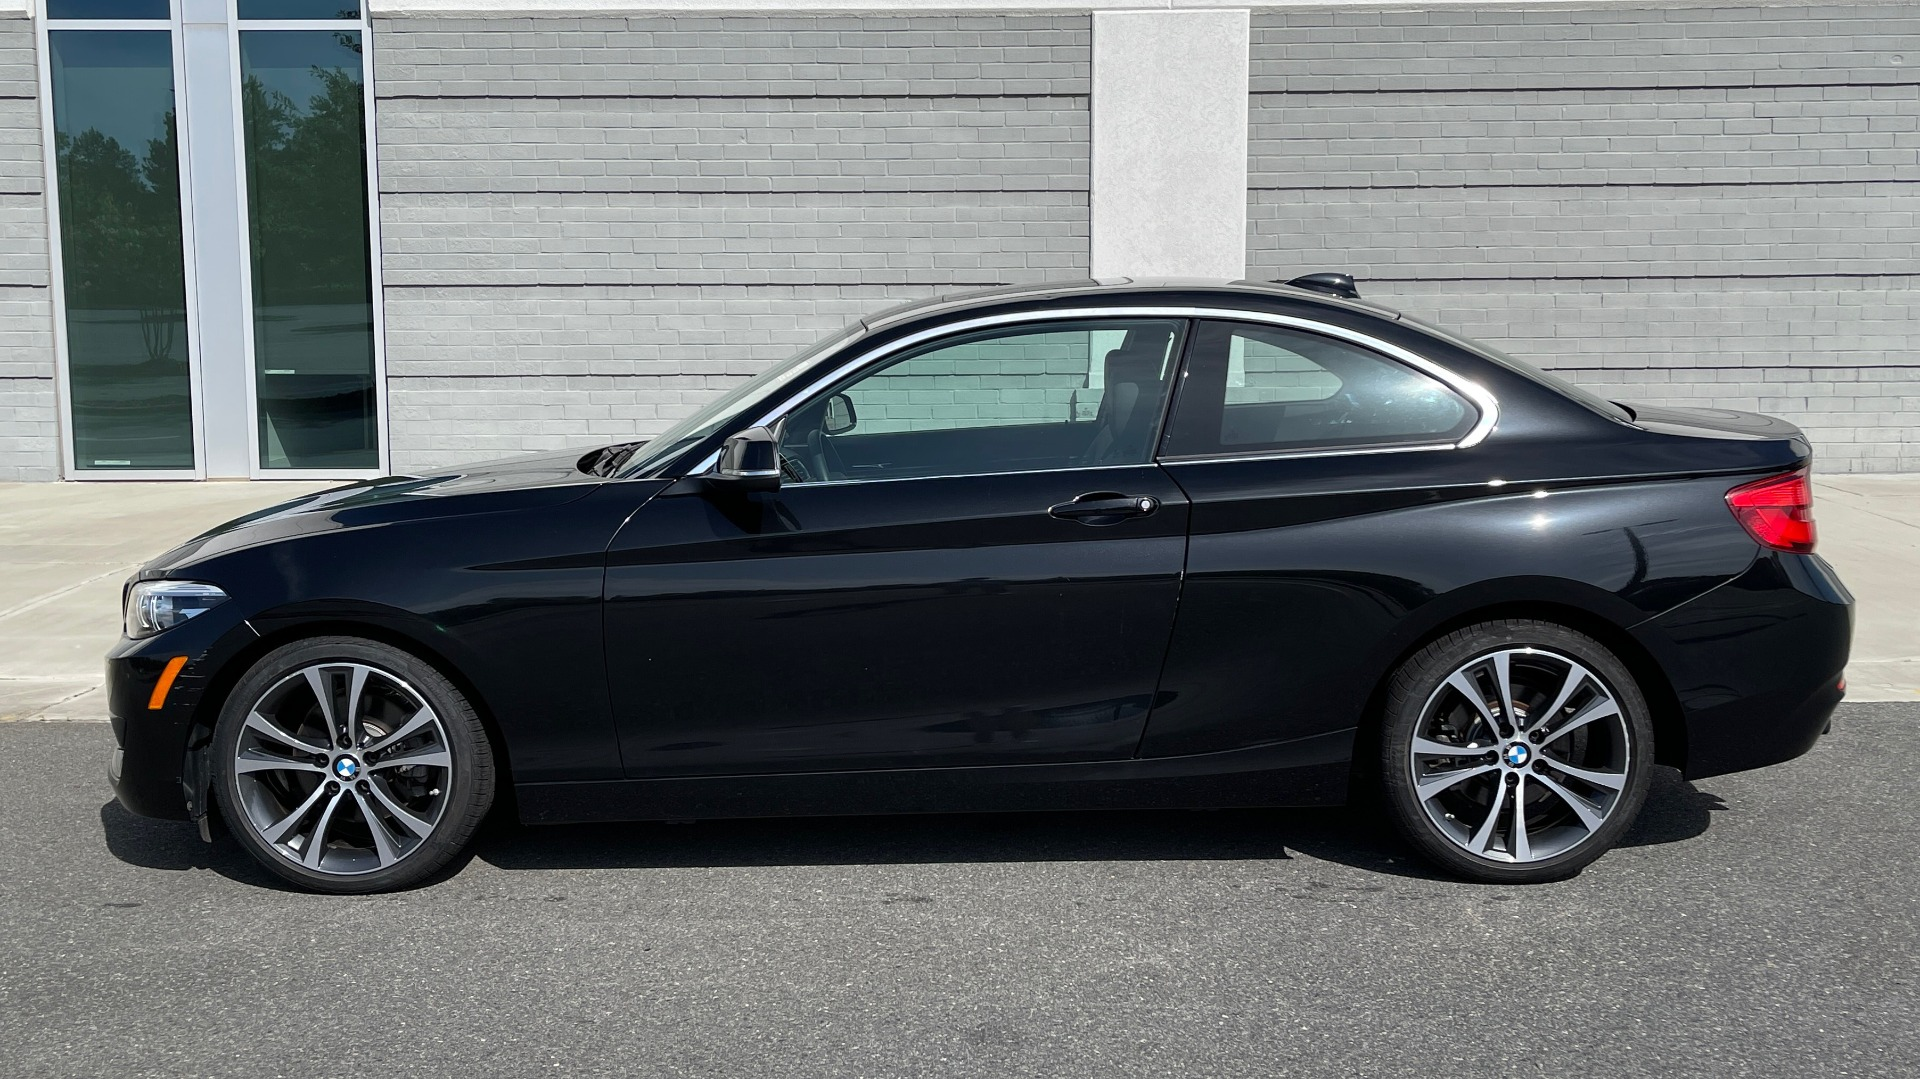 Used 2018 BMW 2 SERIES 230I XDRIVE PREMIUM / CONV PKG / NAV / SUNROOF / REARVIEW for sale $30,795 at Formula Imports in Charlotte NC 28227 4